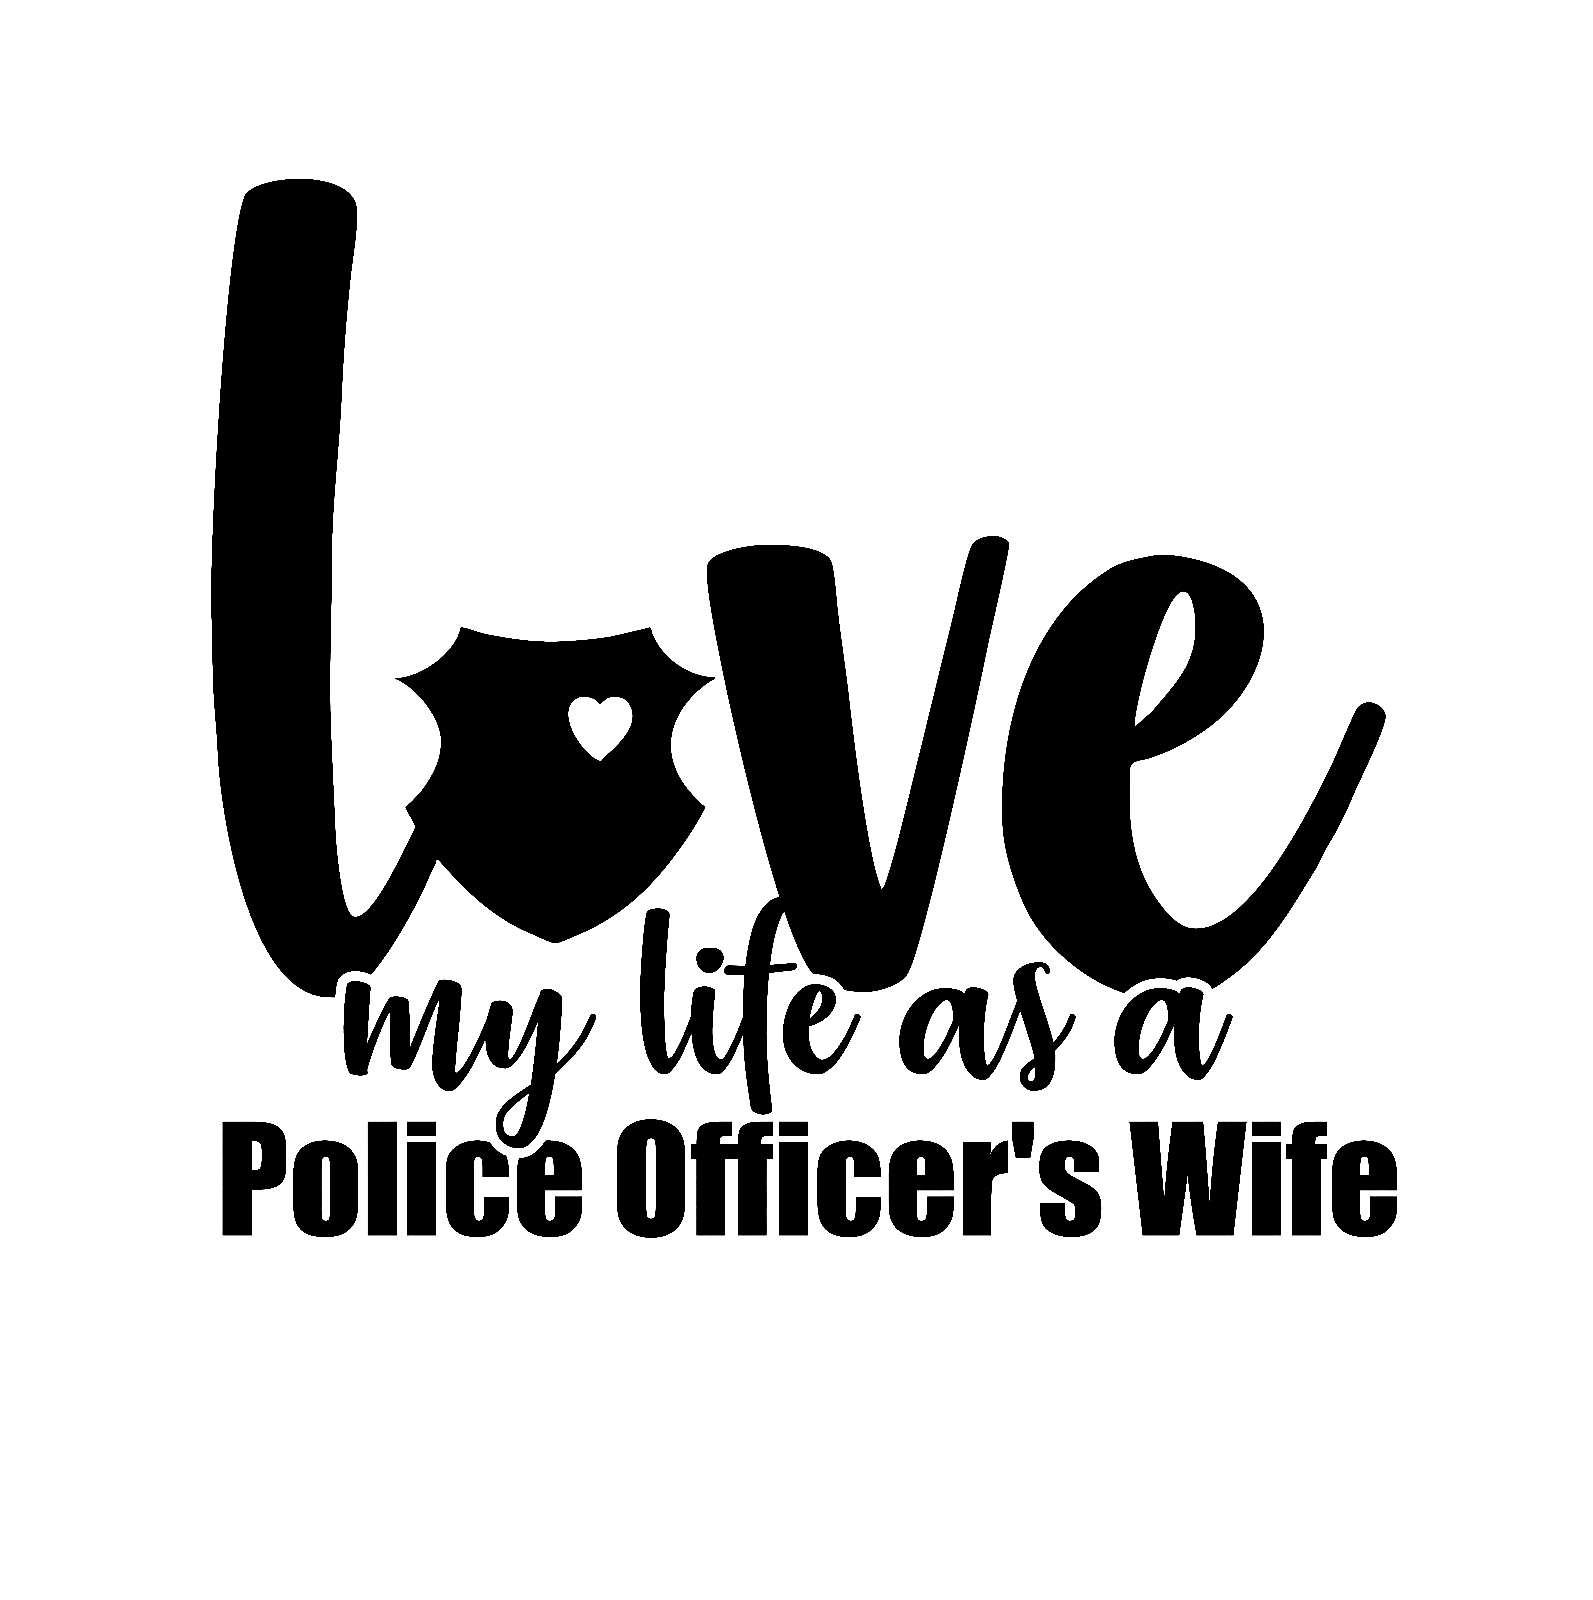 Loving Life Police Officers Wife Vinyl Decal Sticker Badge Officer Cop I Love Interesting Car